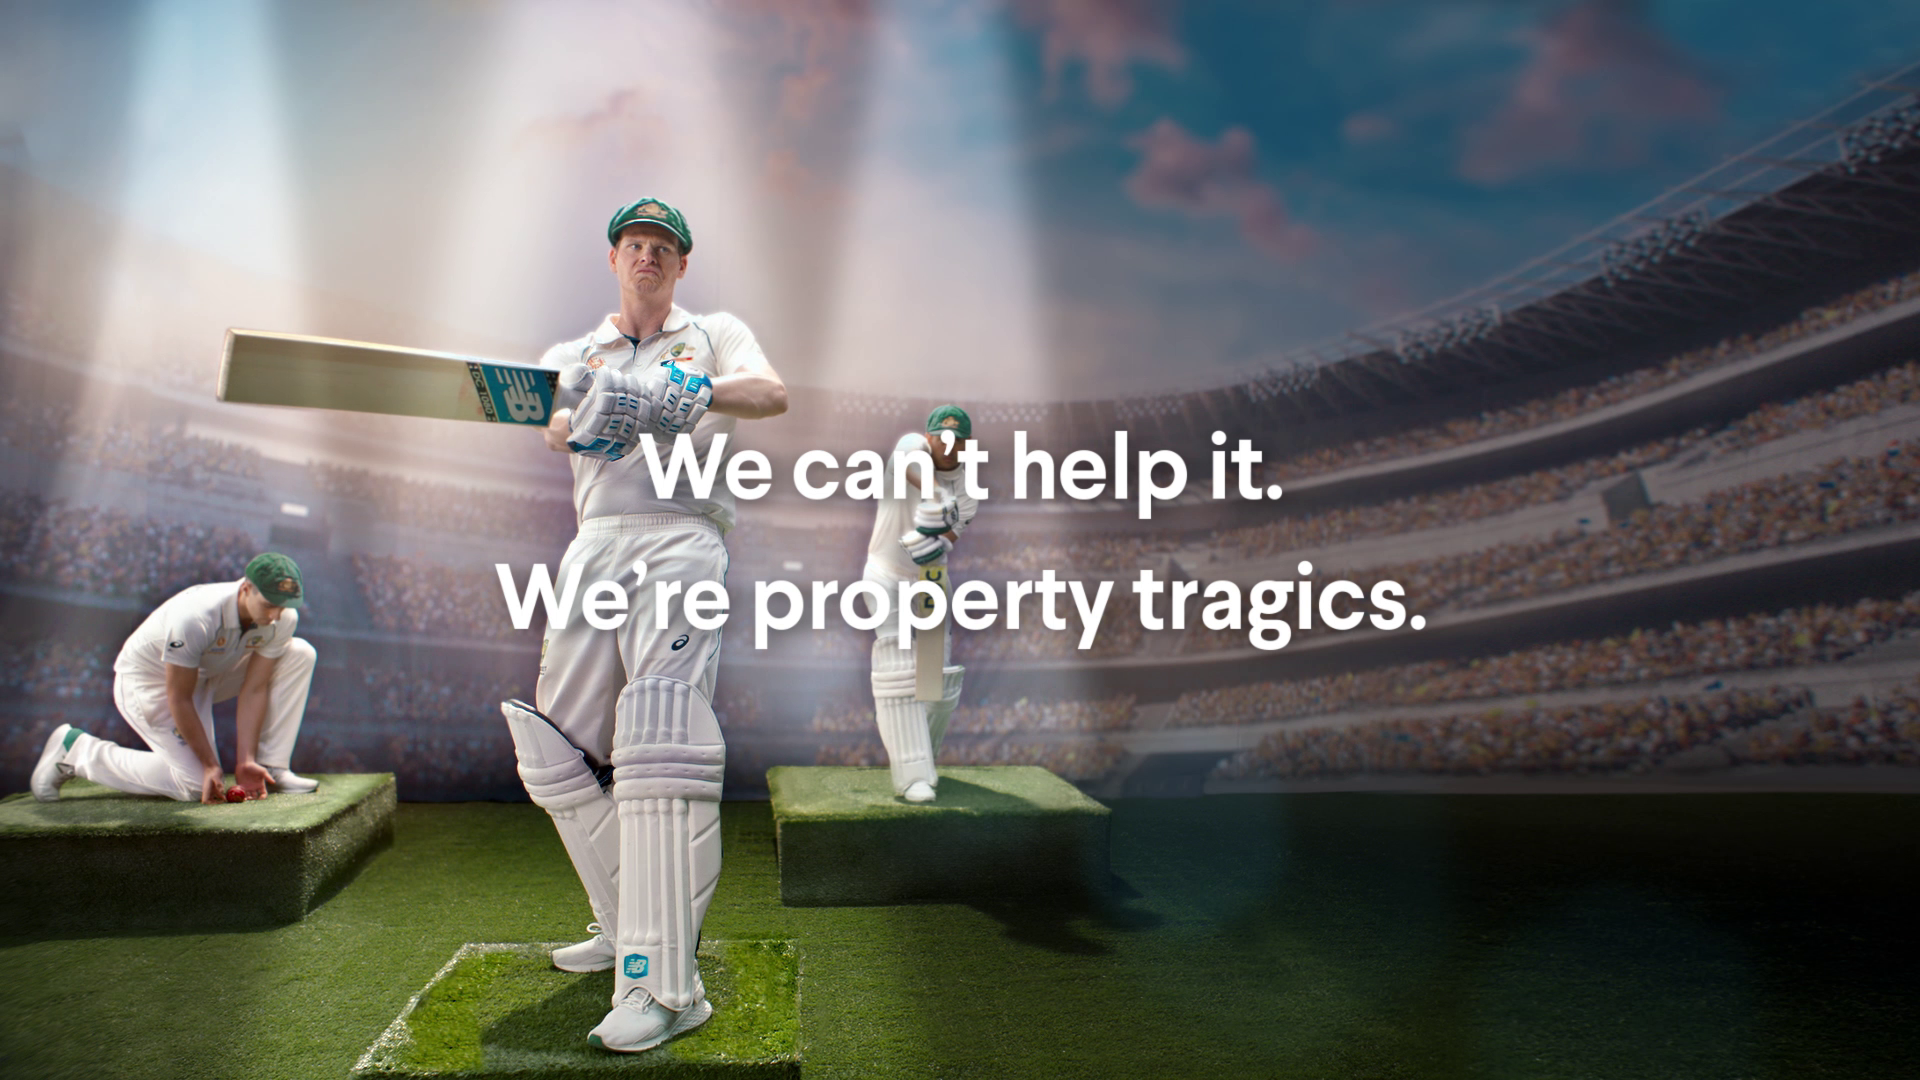 Domain and Cricket Australia launch 'Proudly Property Tragics' campaign via Special Group